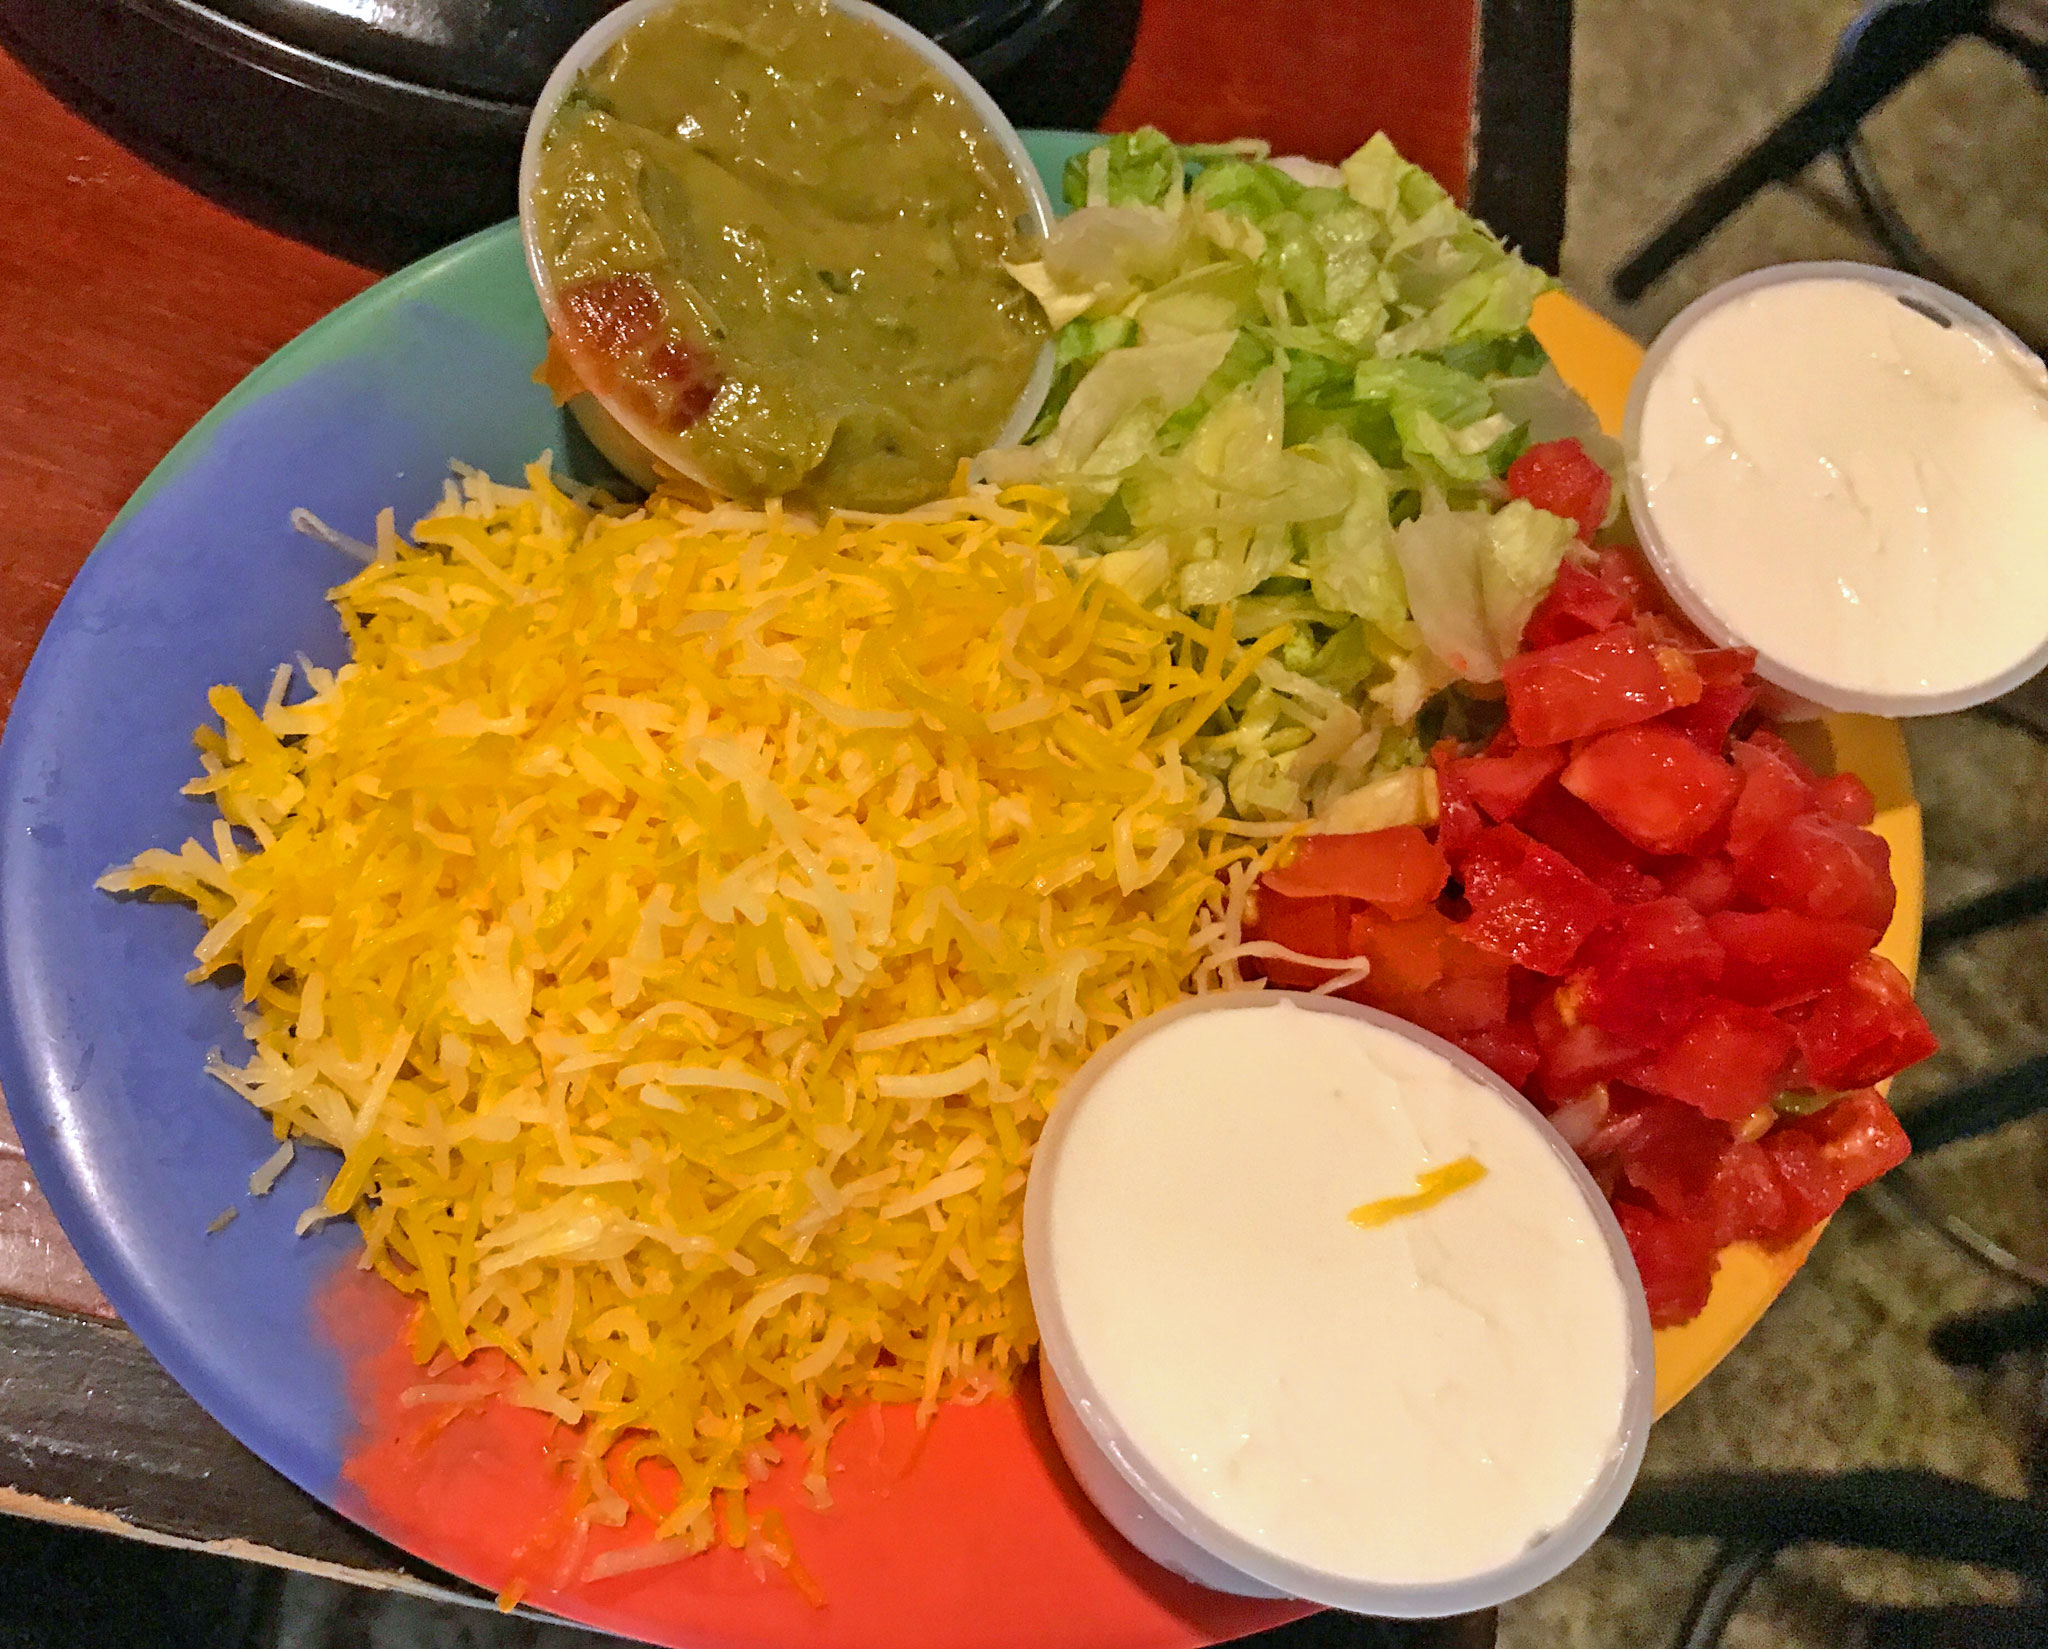 Fajita Toppings - Cheese, Guac. Lettuce, Tomato, Sour Cream